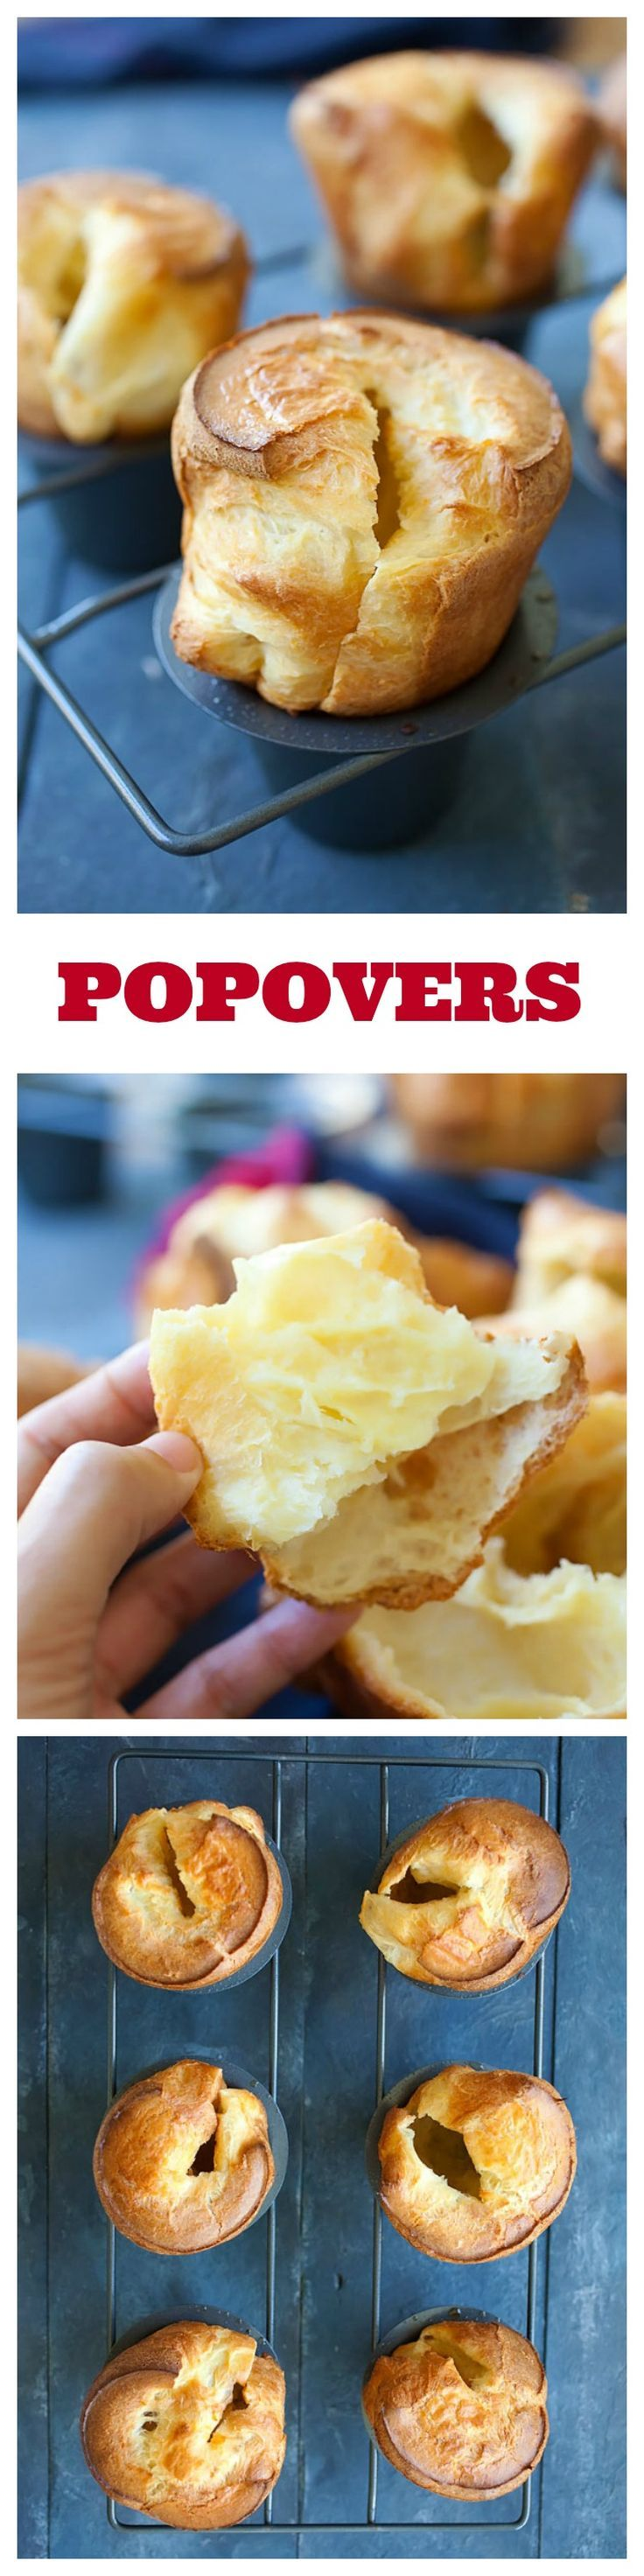 Popovers - the easiest and most delicious popover recipe ever, fail-proof | rasamalaysia.com